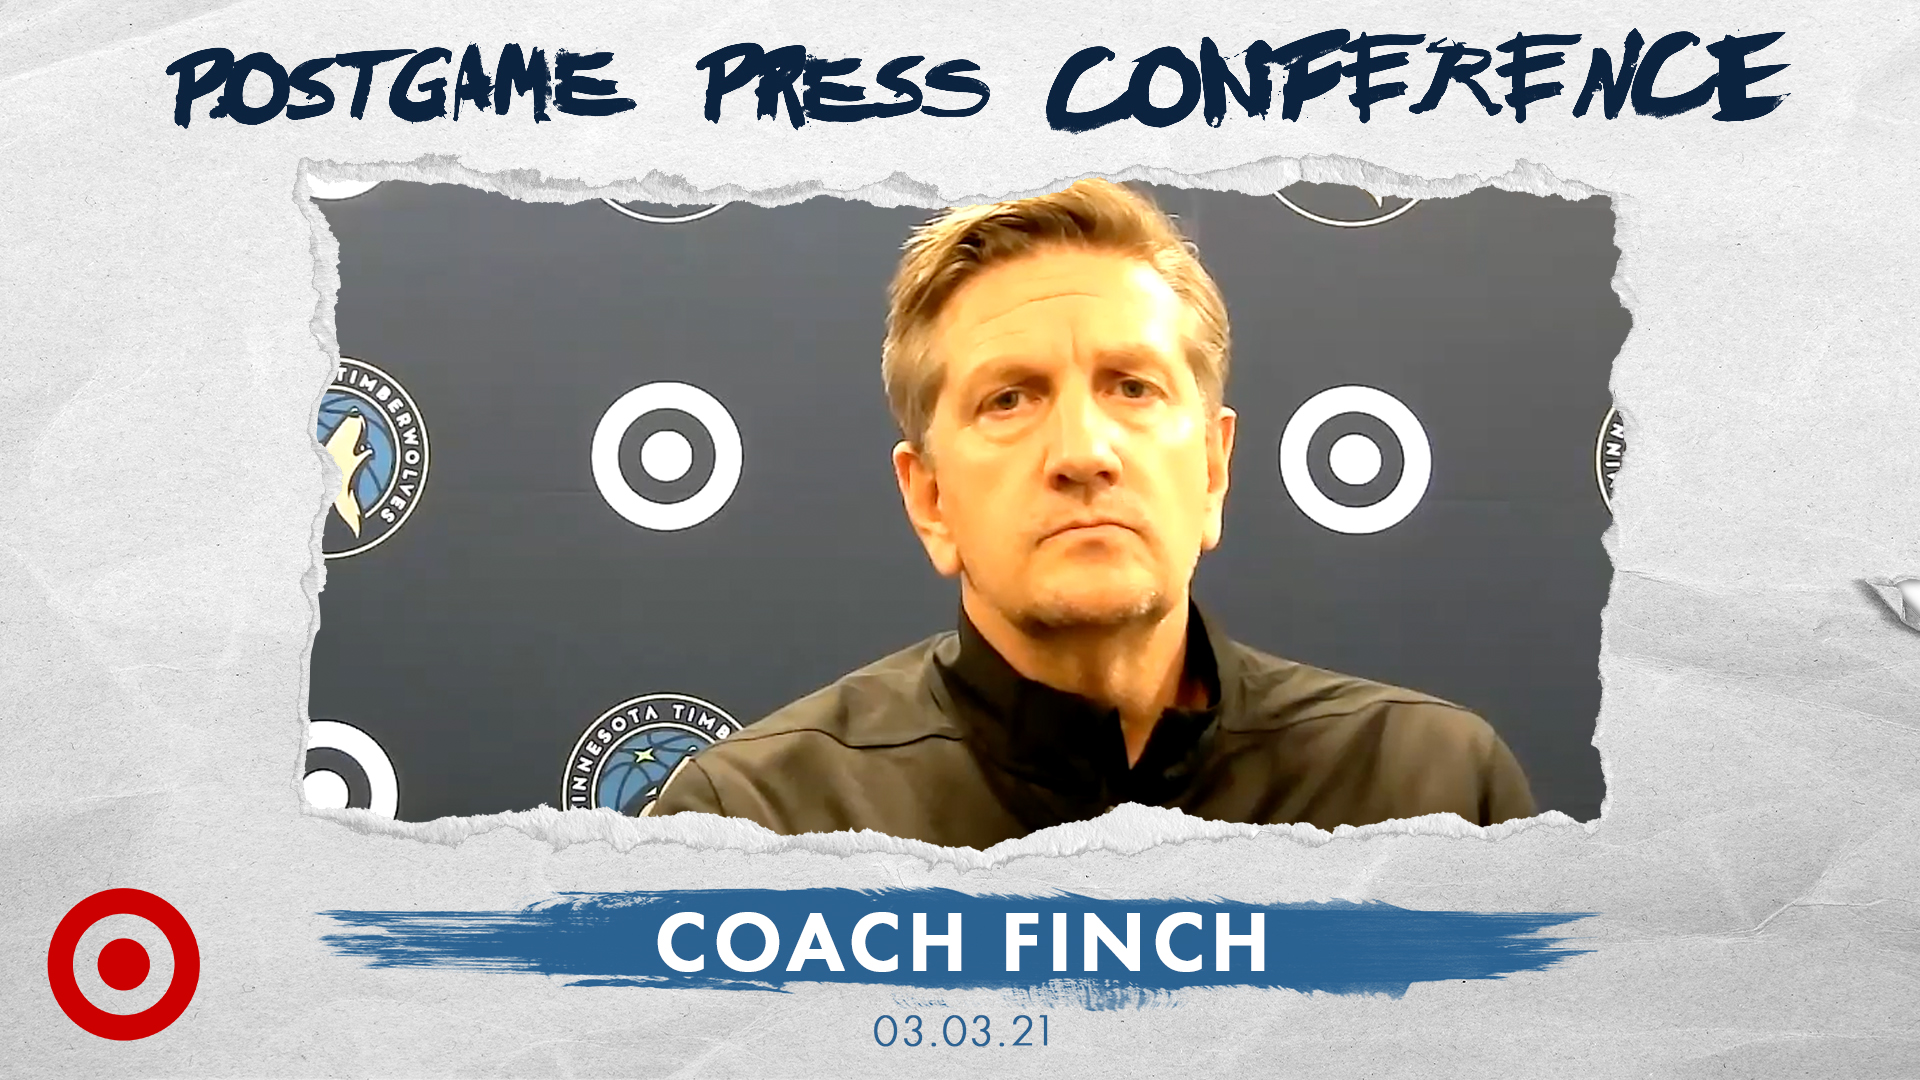 Coach Finch Postgame Press Conference - March 3, 2021